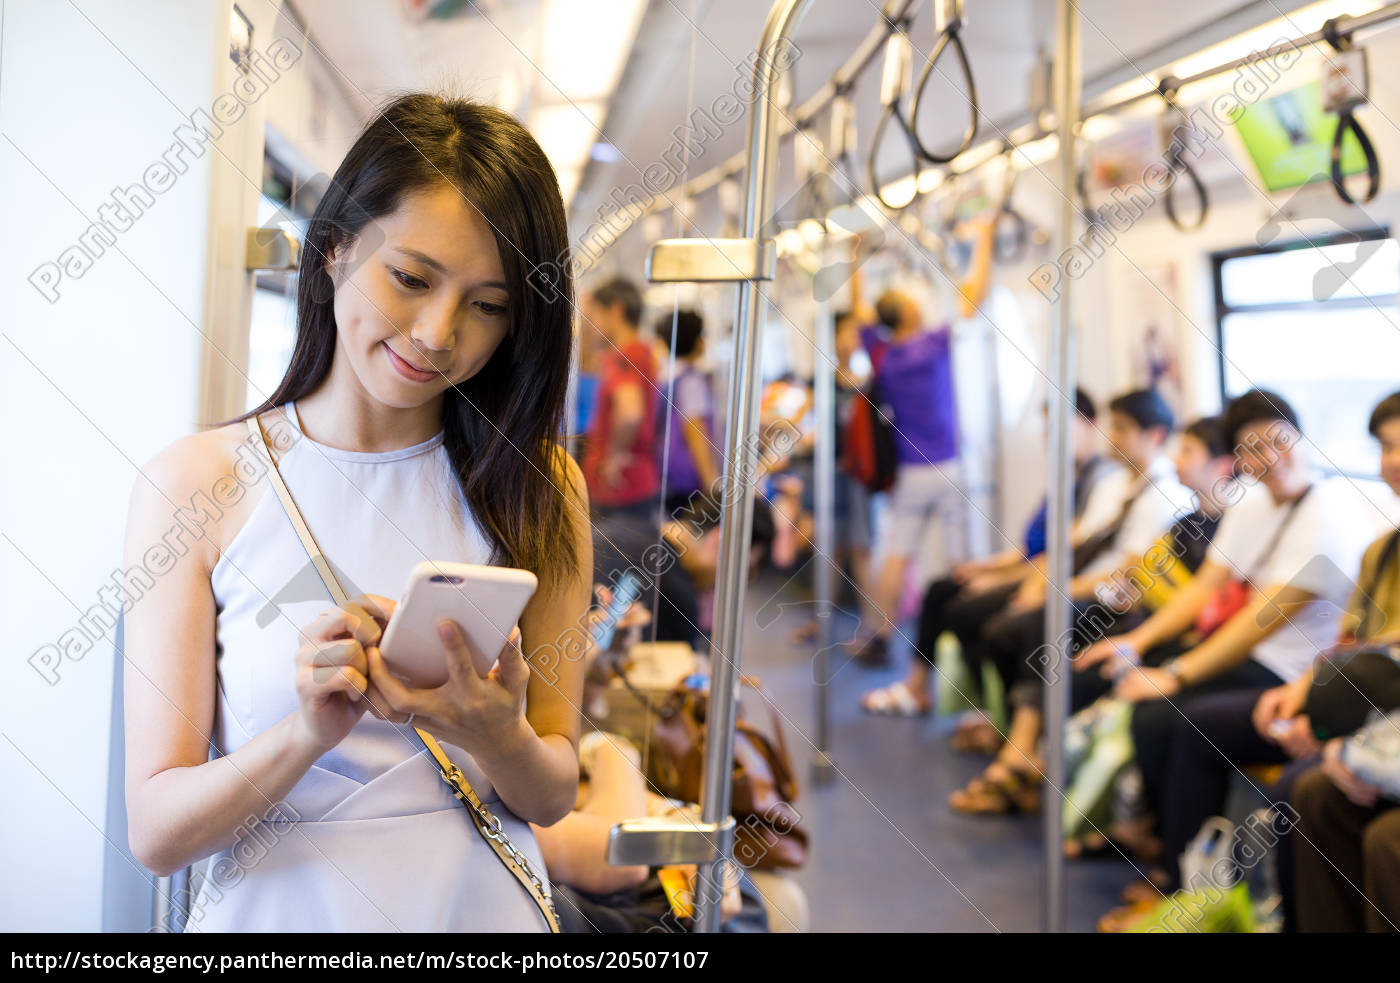 woman, using, cellphone, inside, train, compartment - 20507107